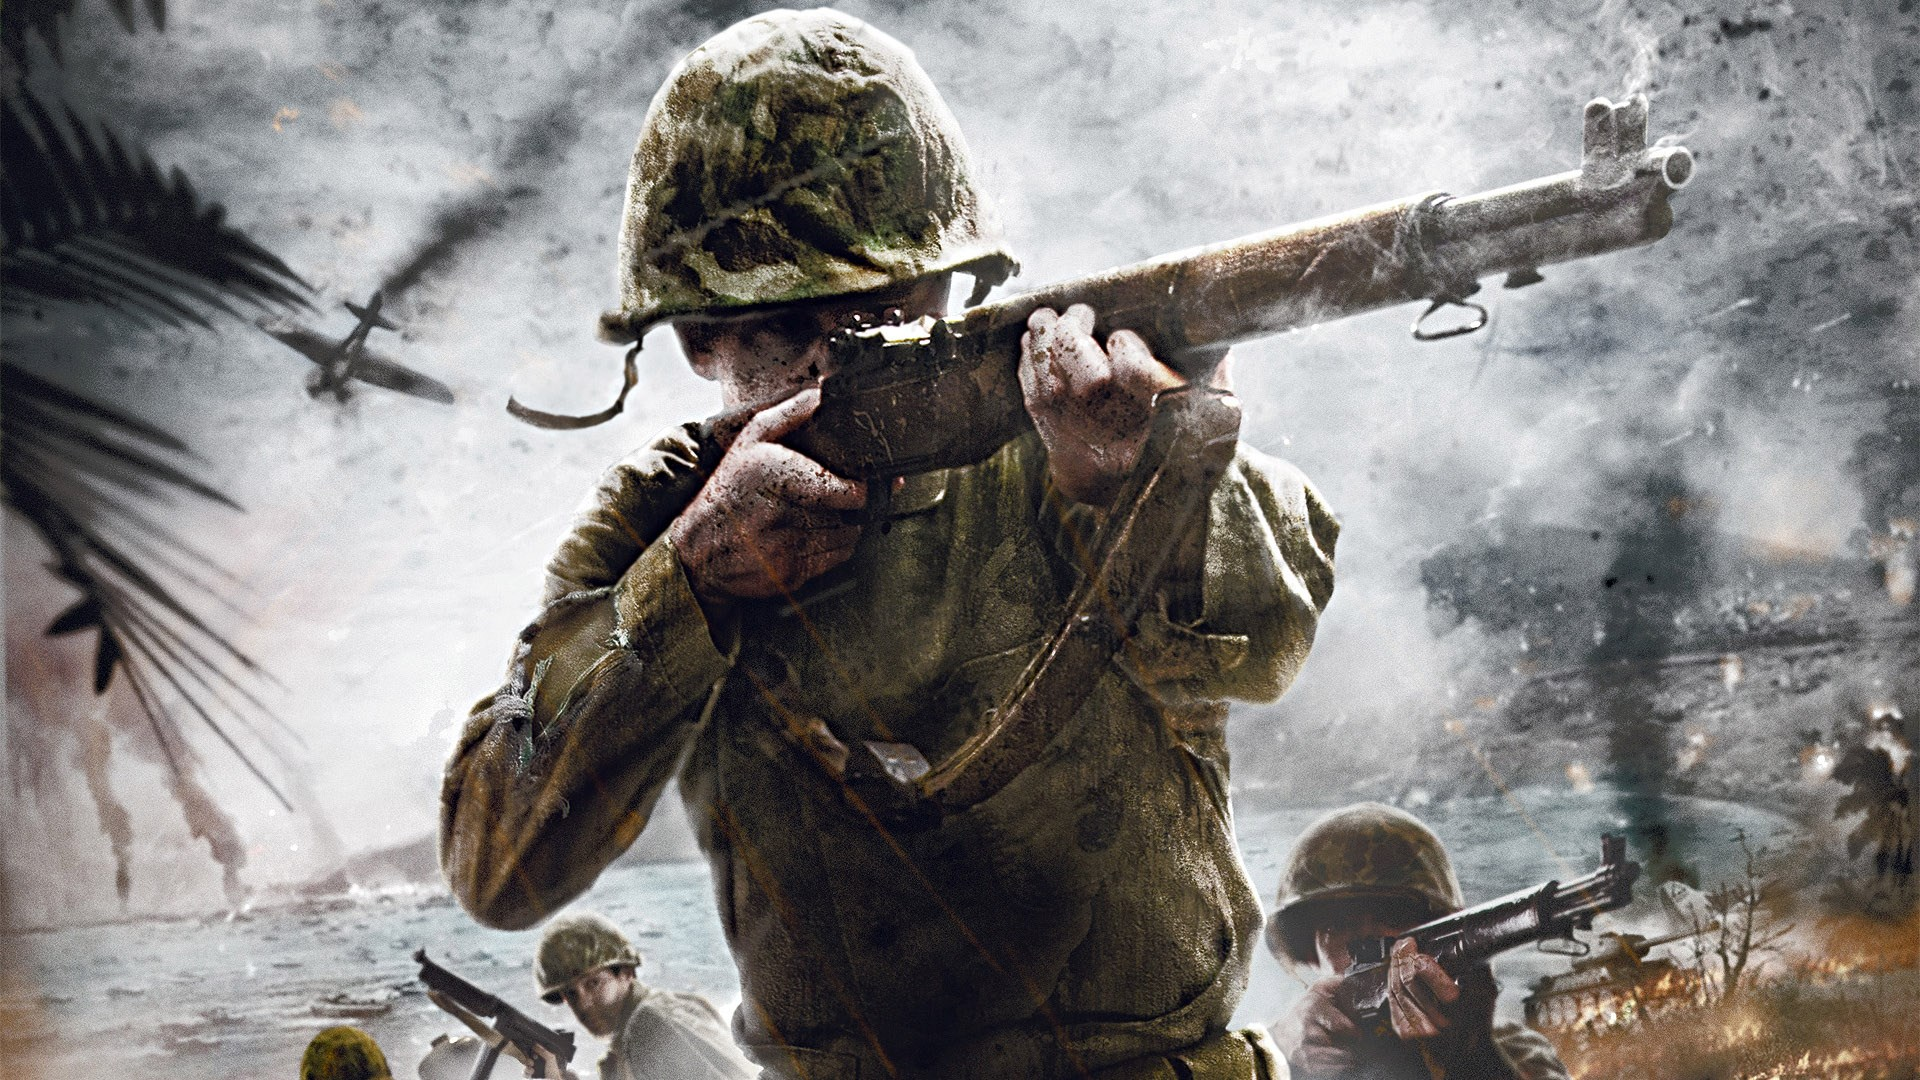 call-of-duty-pic-High-Definition-Backgrounds-Javon-Blare-wallpaper-wp3403673